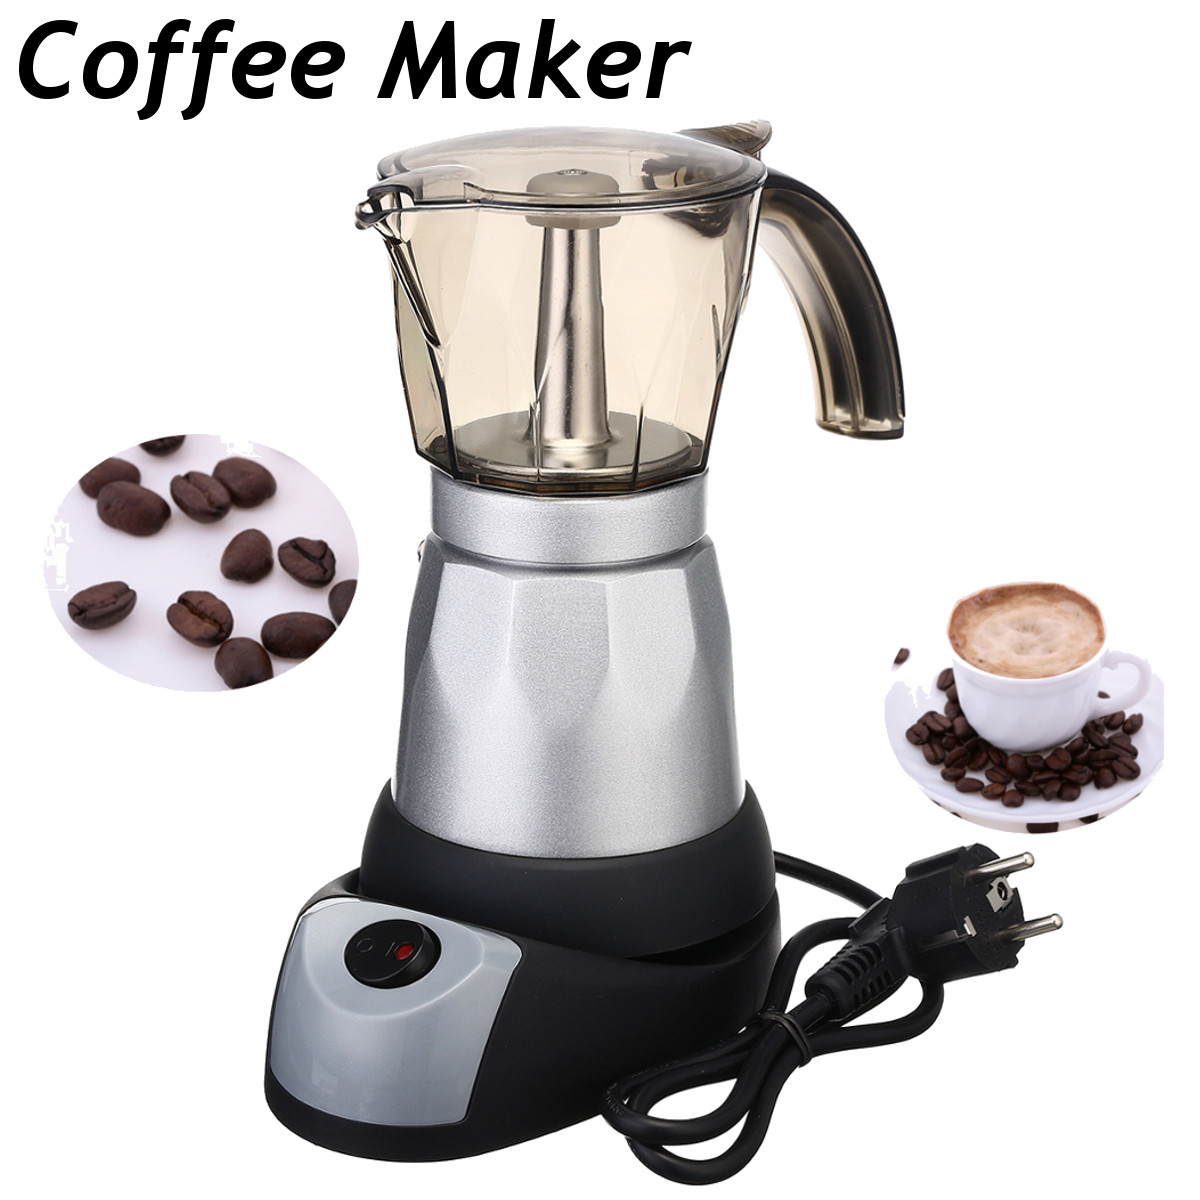 6 Cups 50ml Portable Electric Coffee Maker Stainless Steel Espresso Italian Mocha Coffee Pot For Home Kitchen Coffee Making6 Cups 50ml Portable Electric Coffee Maker Stainless Steel Espresso Italian Mocha Coffee Pot For Home Kitchen Coffee Making